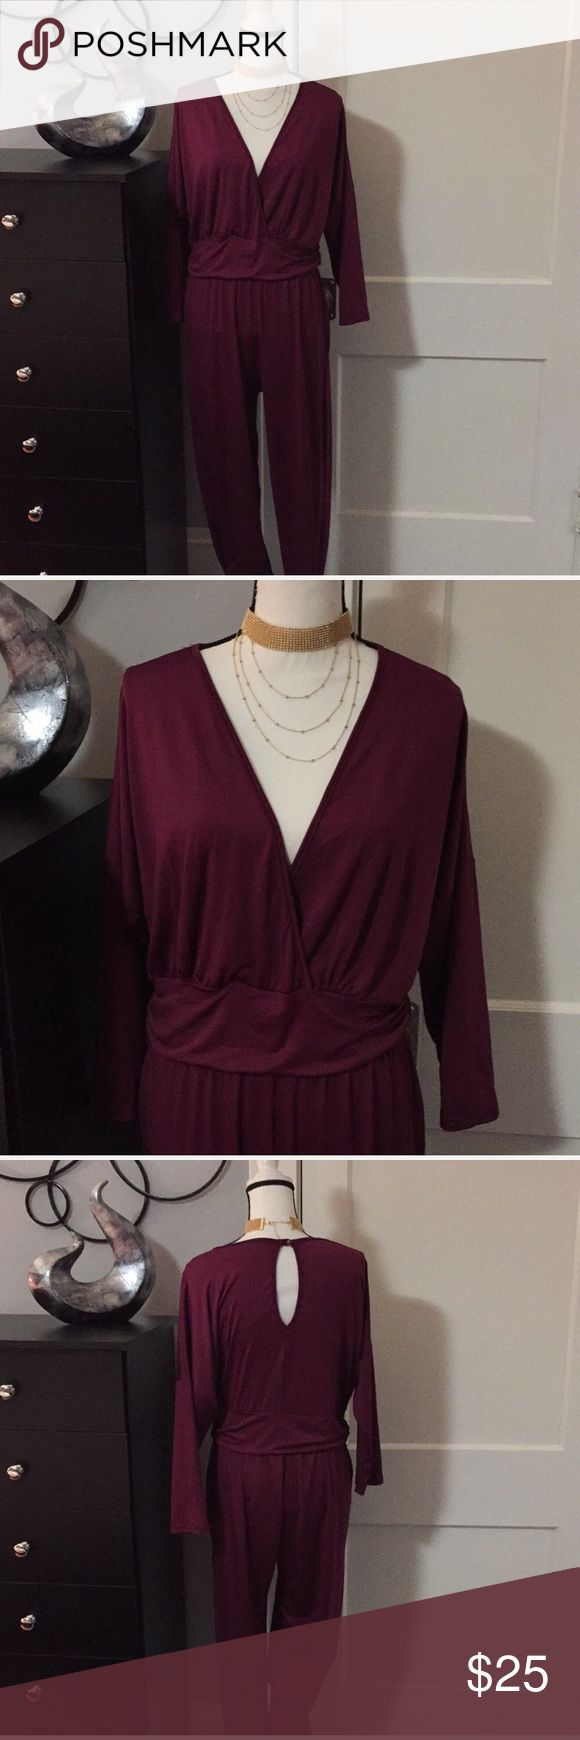 ⚡️Flash Sale⚡️ Burgundy Jumpsuit Sz 1x Burgundy Jumpsuit Sz 1x  Size tag missing but positive this is a 1x Very stretchy and lightweight.  27' Inches From armpit to armpit 17' Inches laid flat waist (unstreched)  30' Inches inseam. ****Necklace Not For Sale***** unbranded Pants Jumpsuits & Rompers